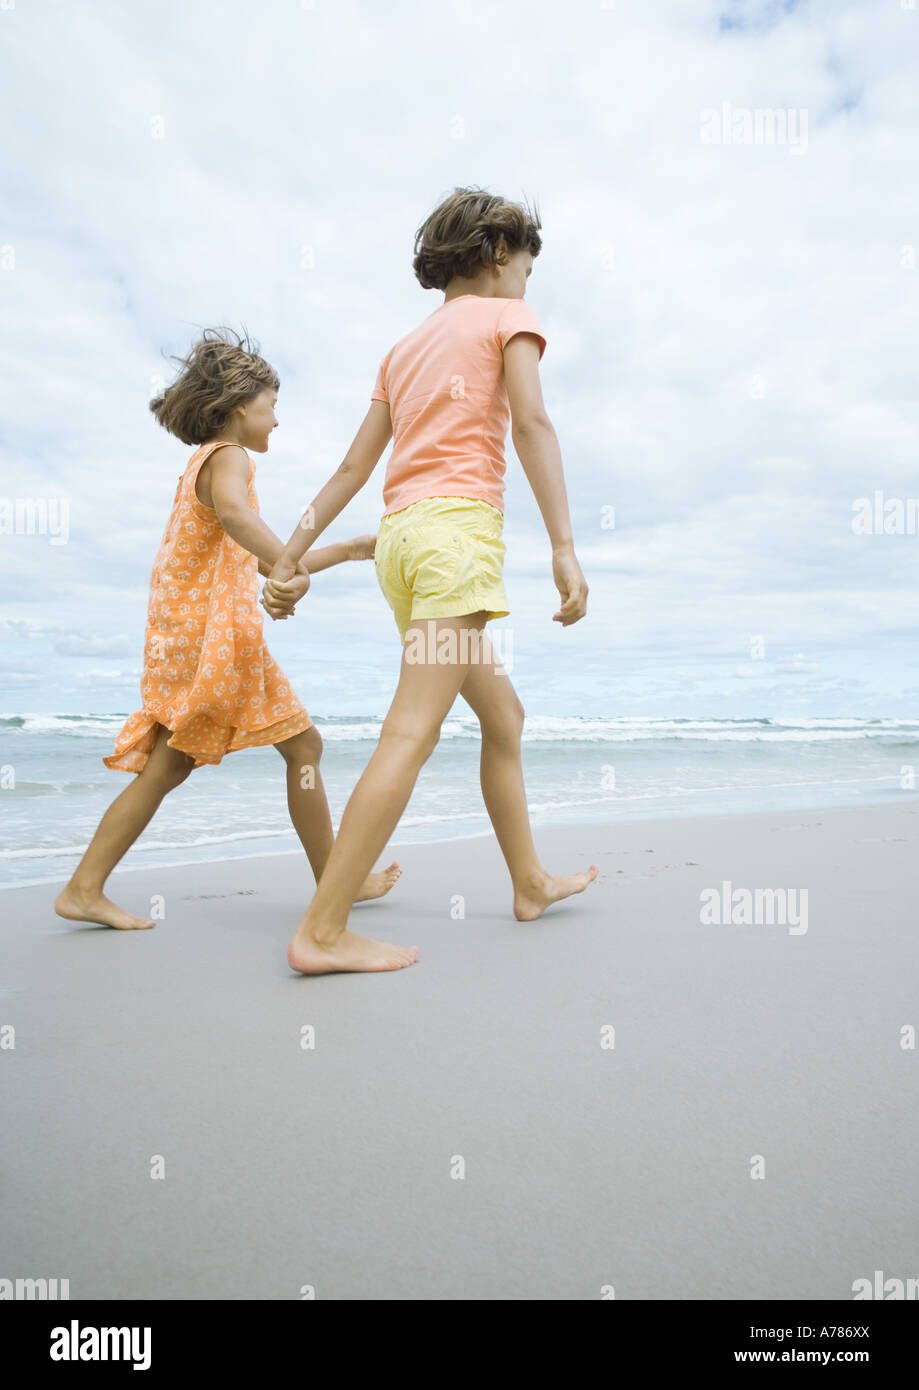 Two girls walking, holding hands, on beach - Stock Image